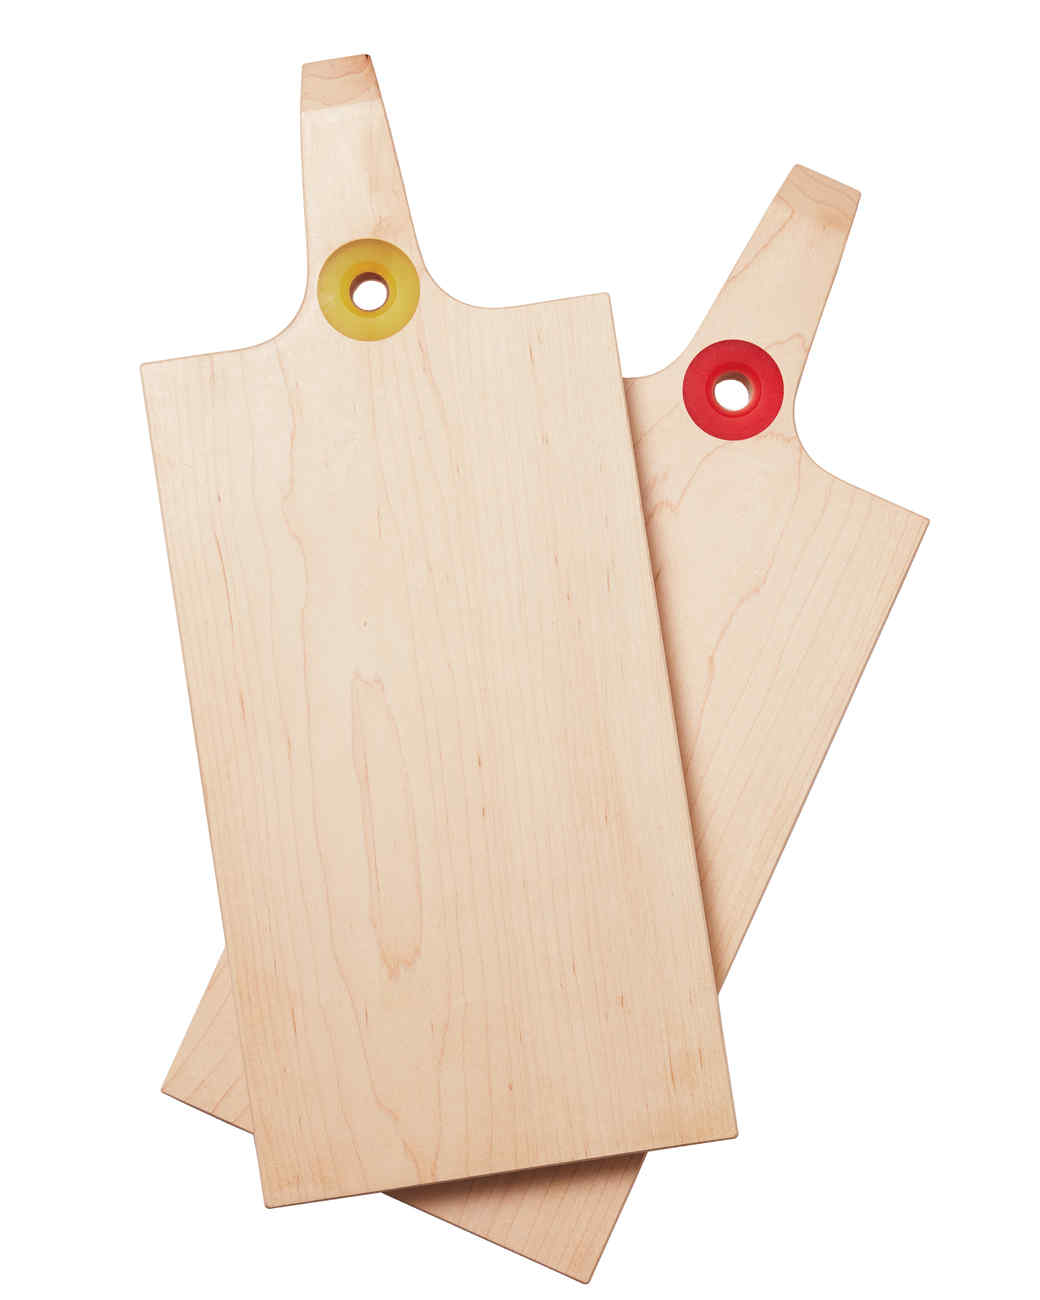 noble-goods-cutting-boards-166-d111535.jpg